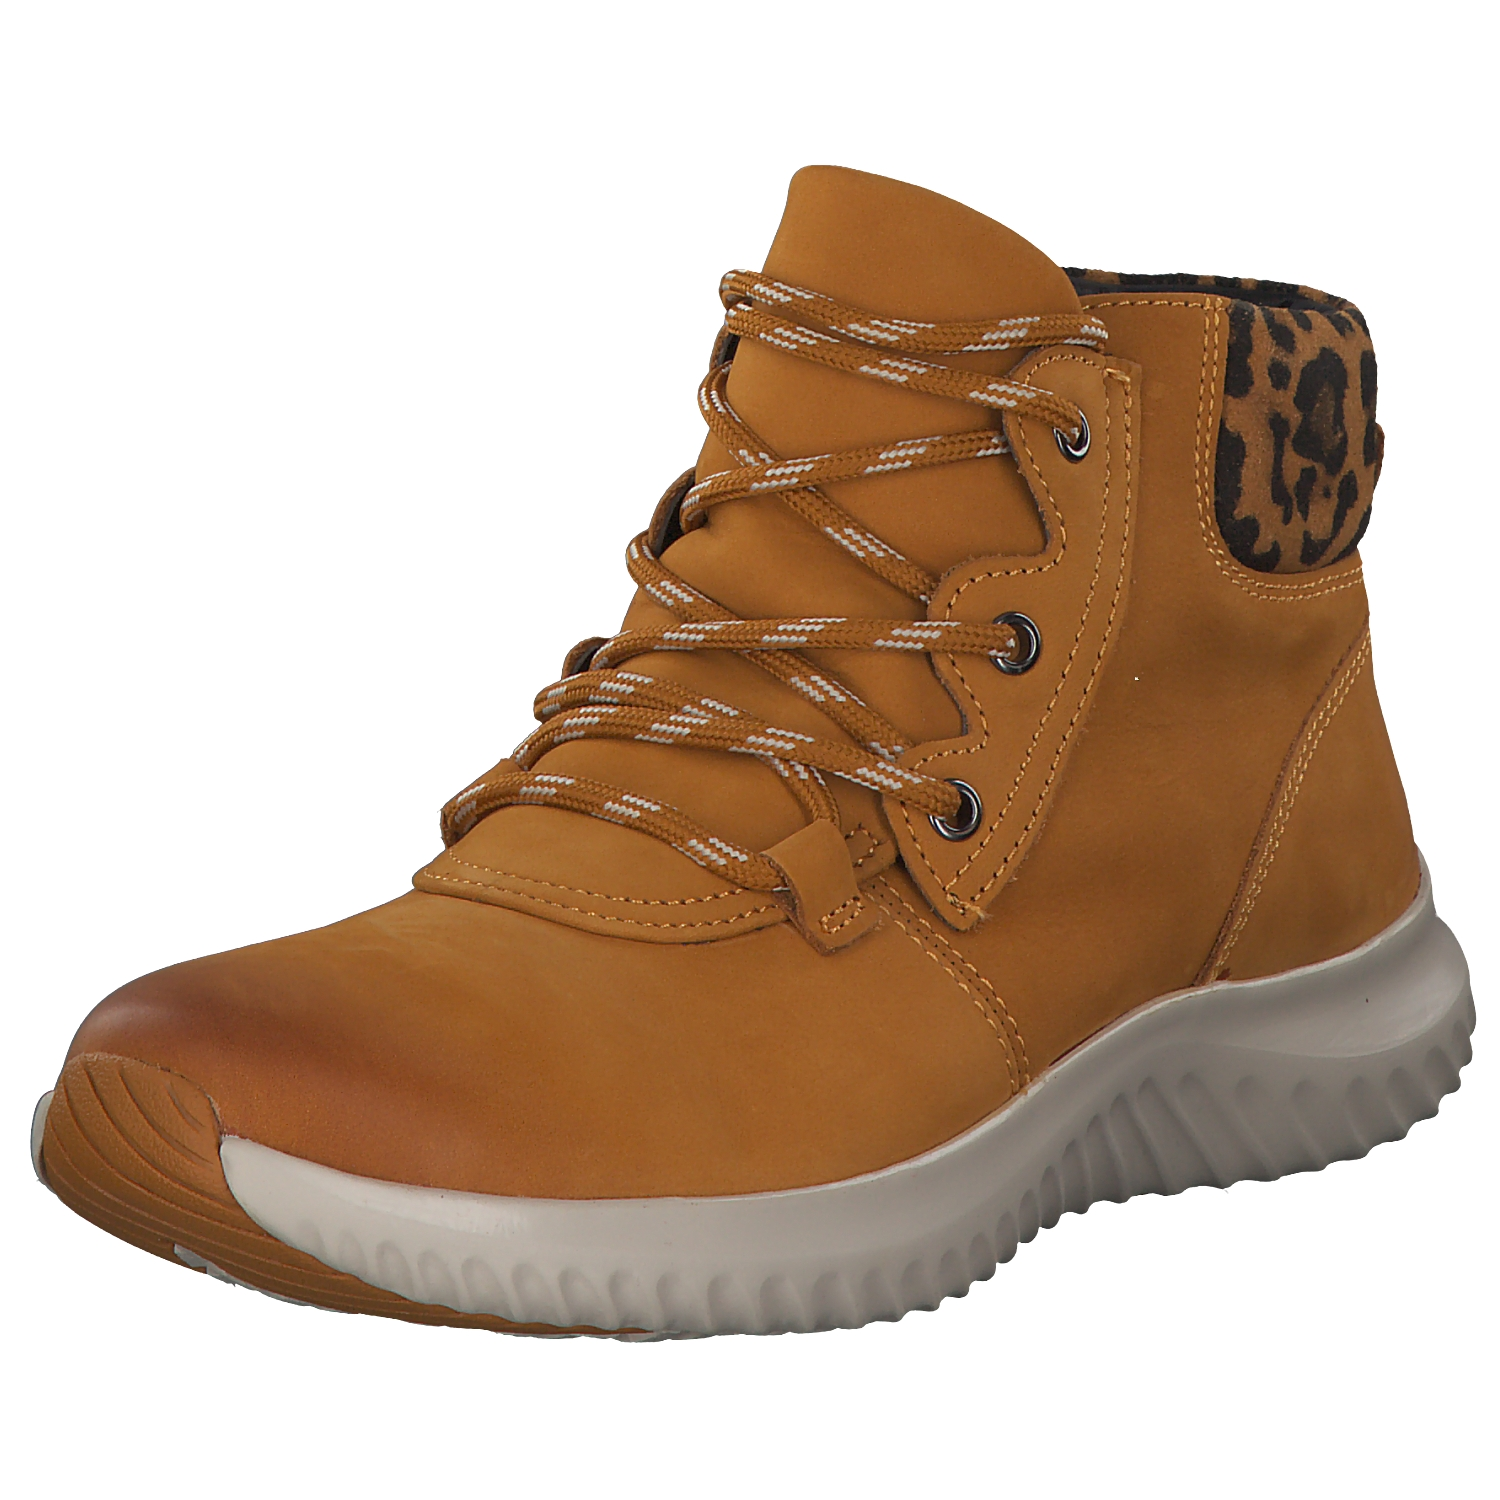 Yellow Boots 885 36 Ladies Winter Gabor Details 92 Curry Ankle About New E92WDHI